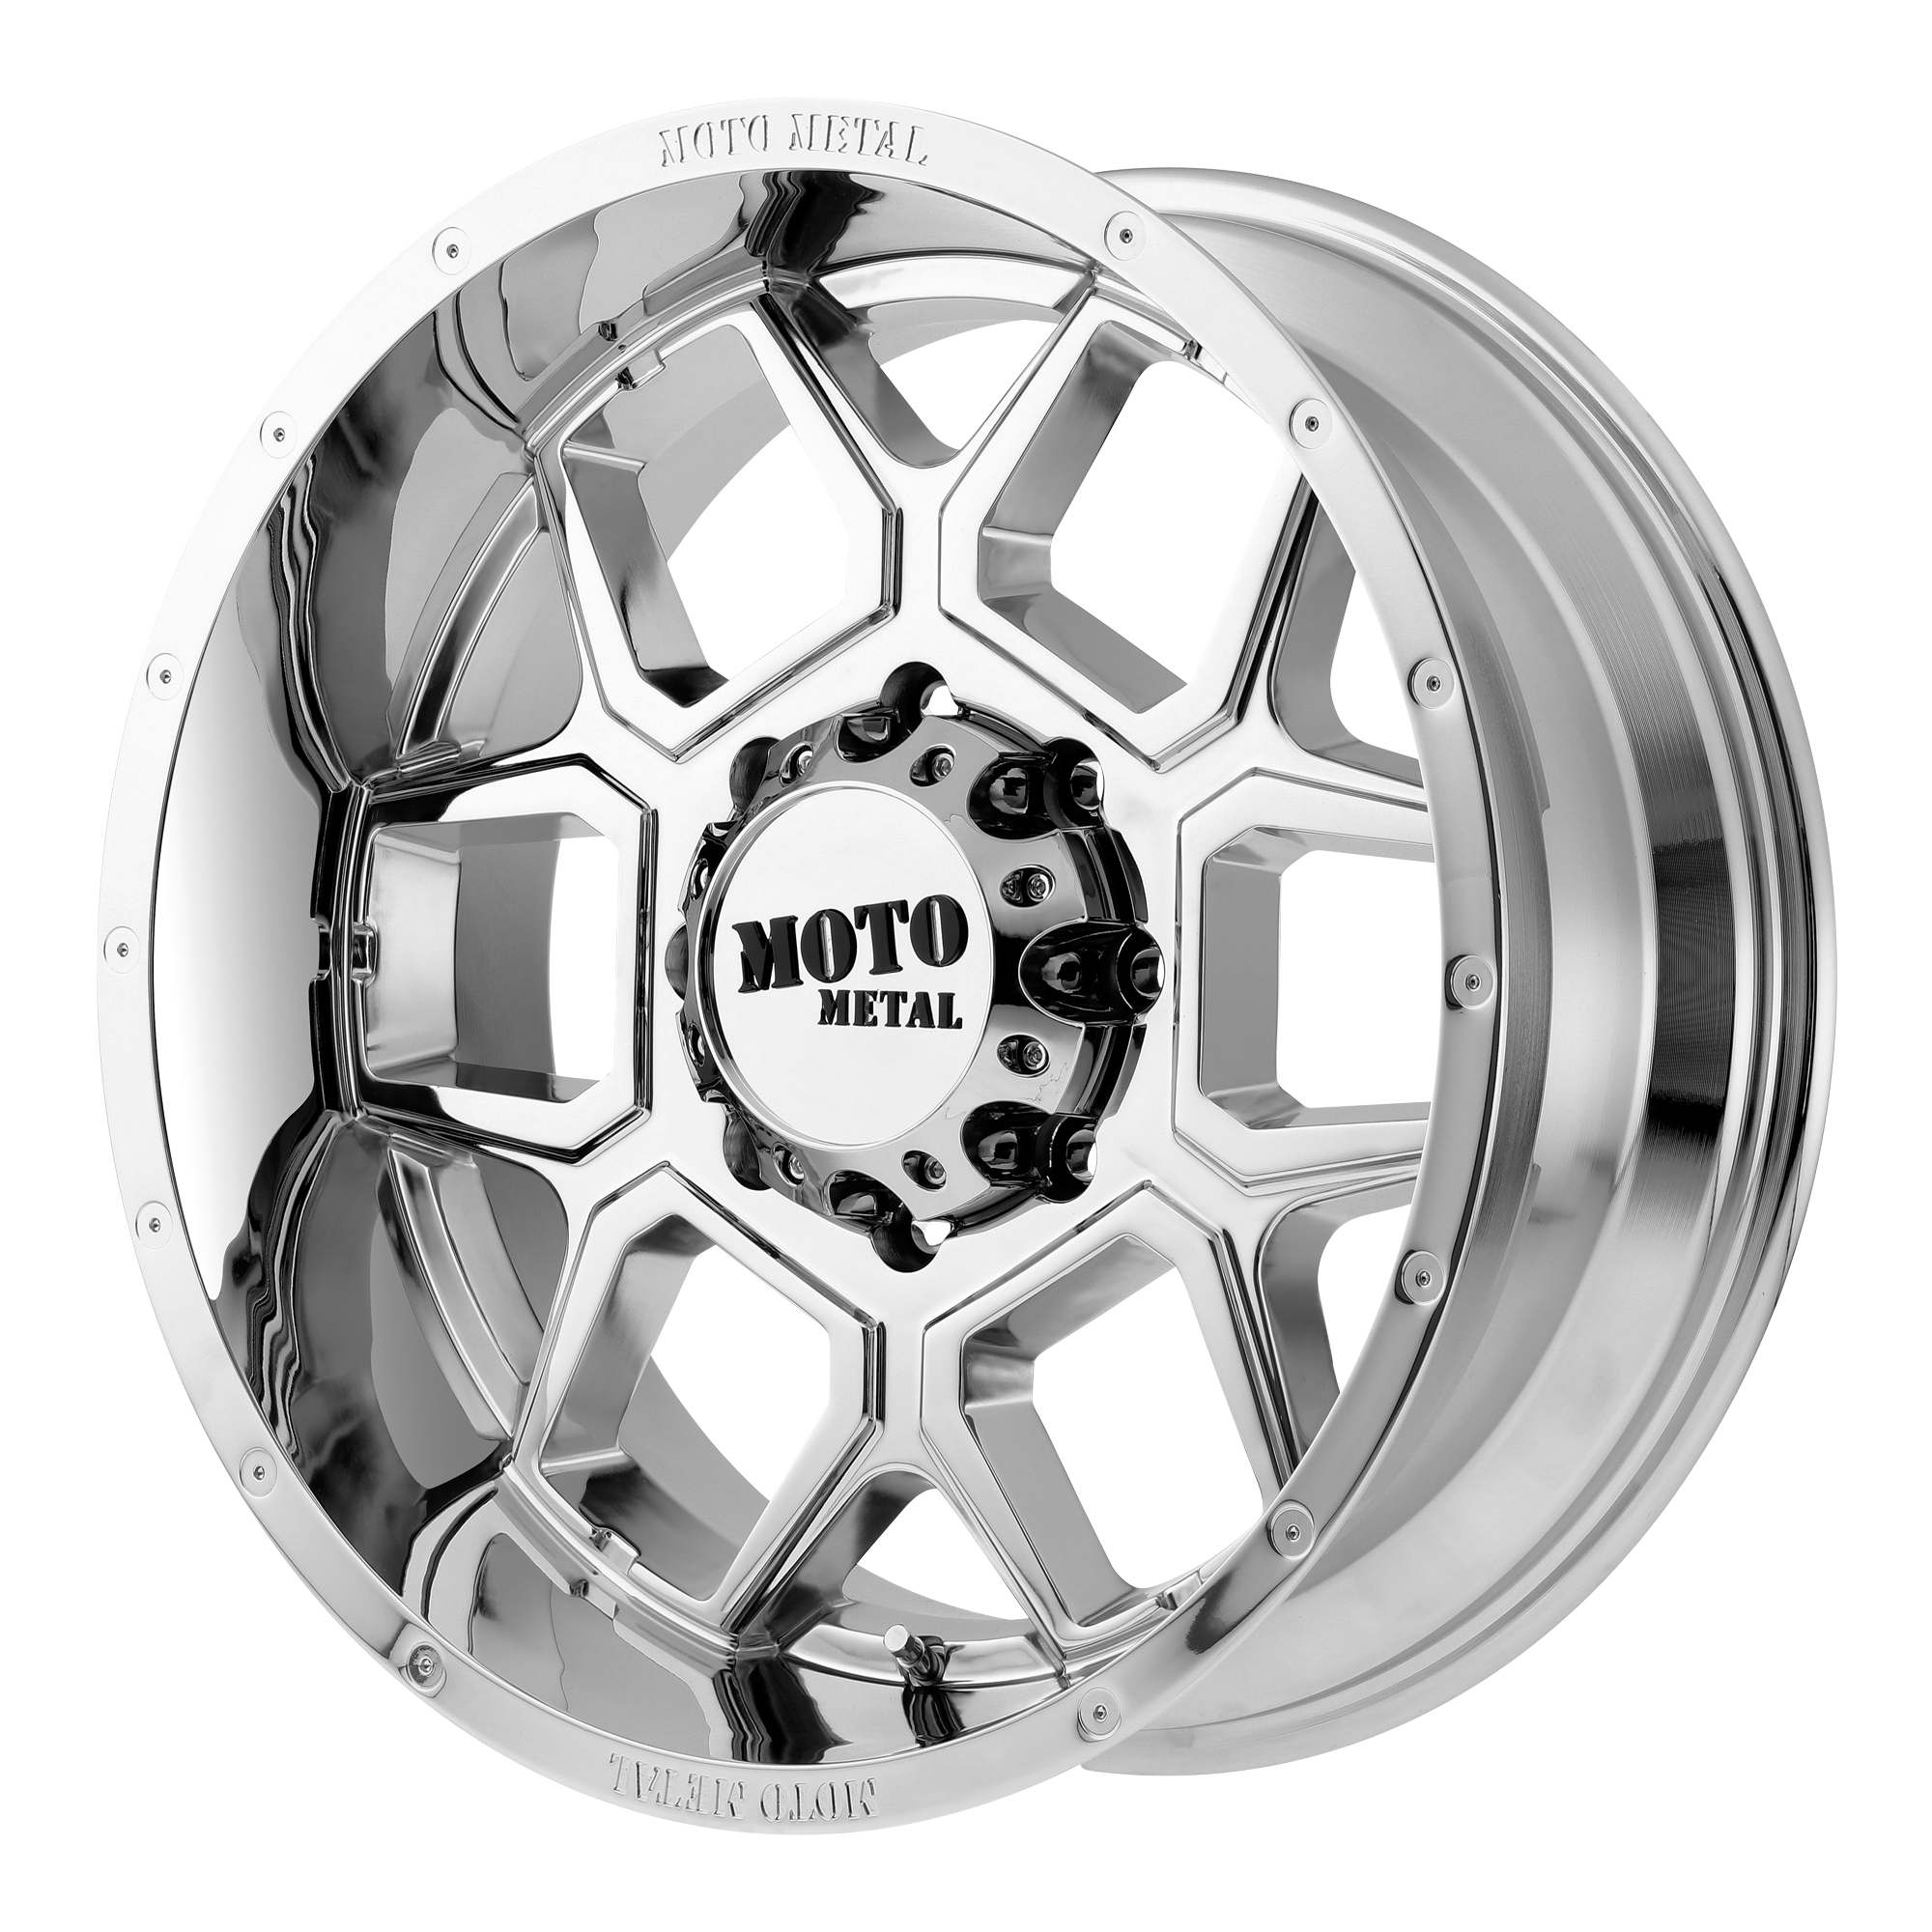 Moto Metal Offroad Wheels SPADE Chrome